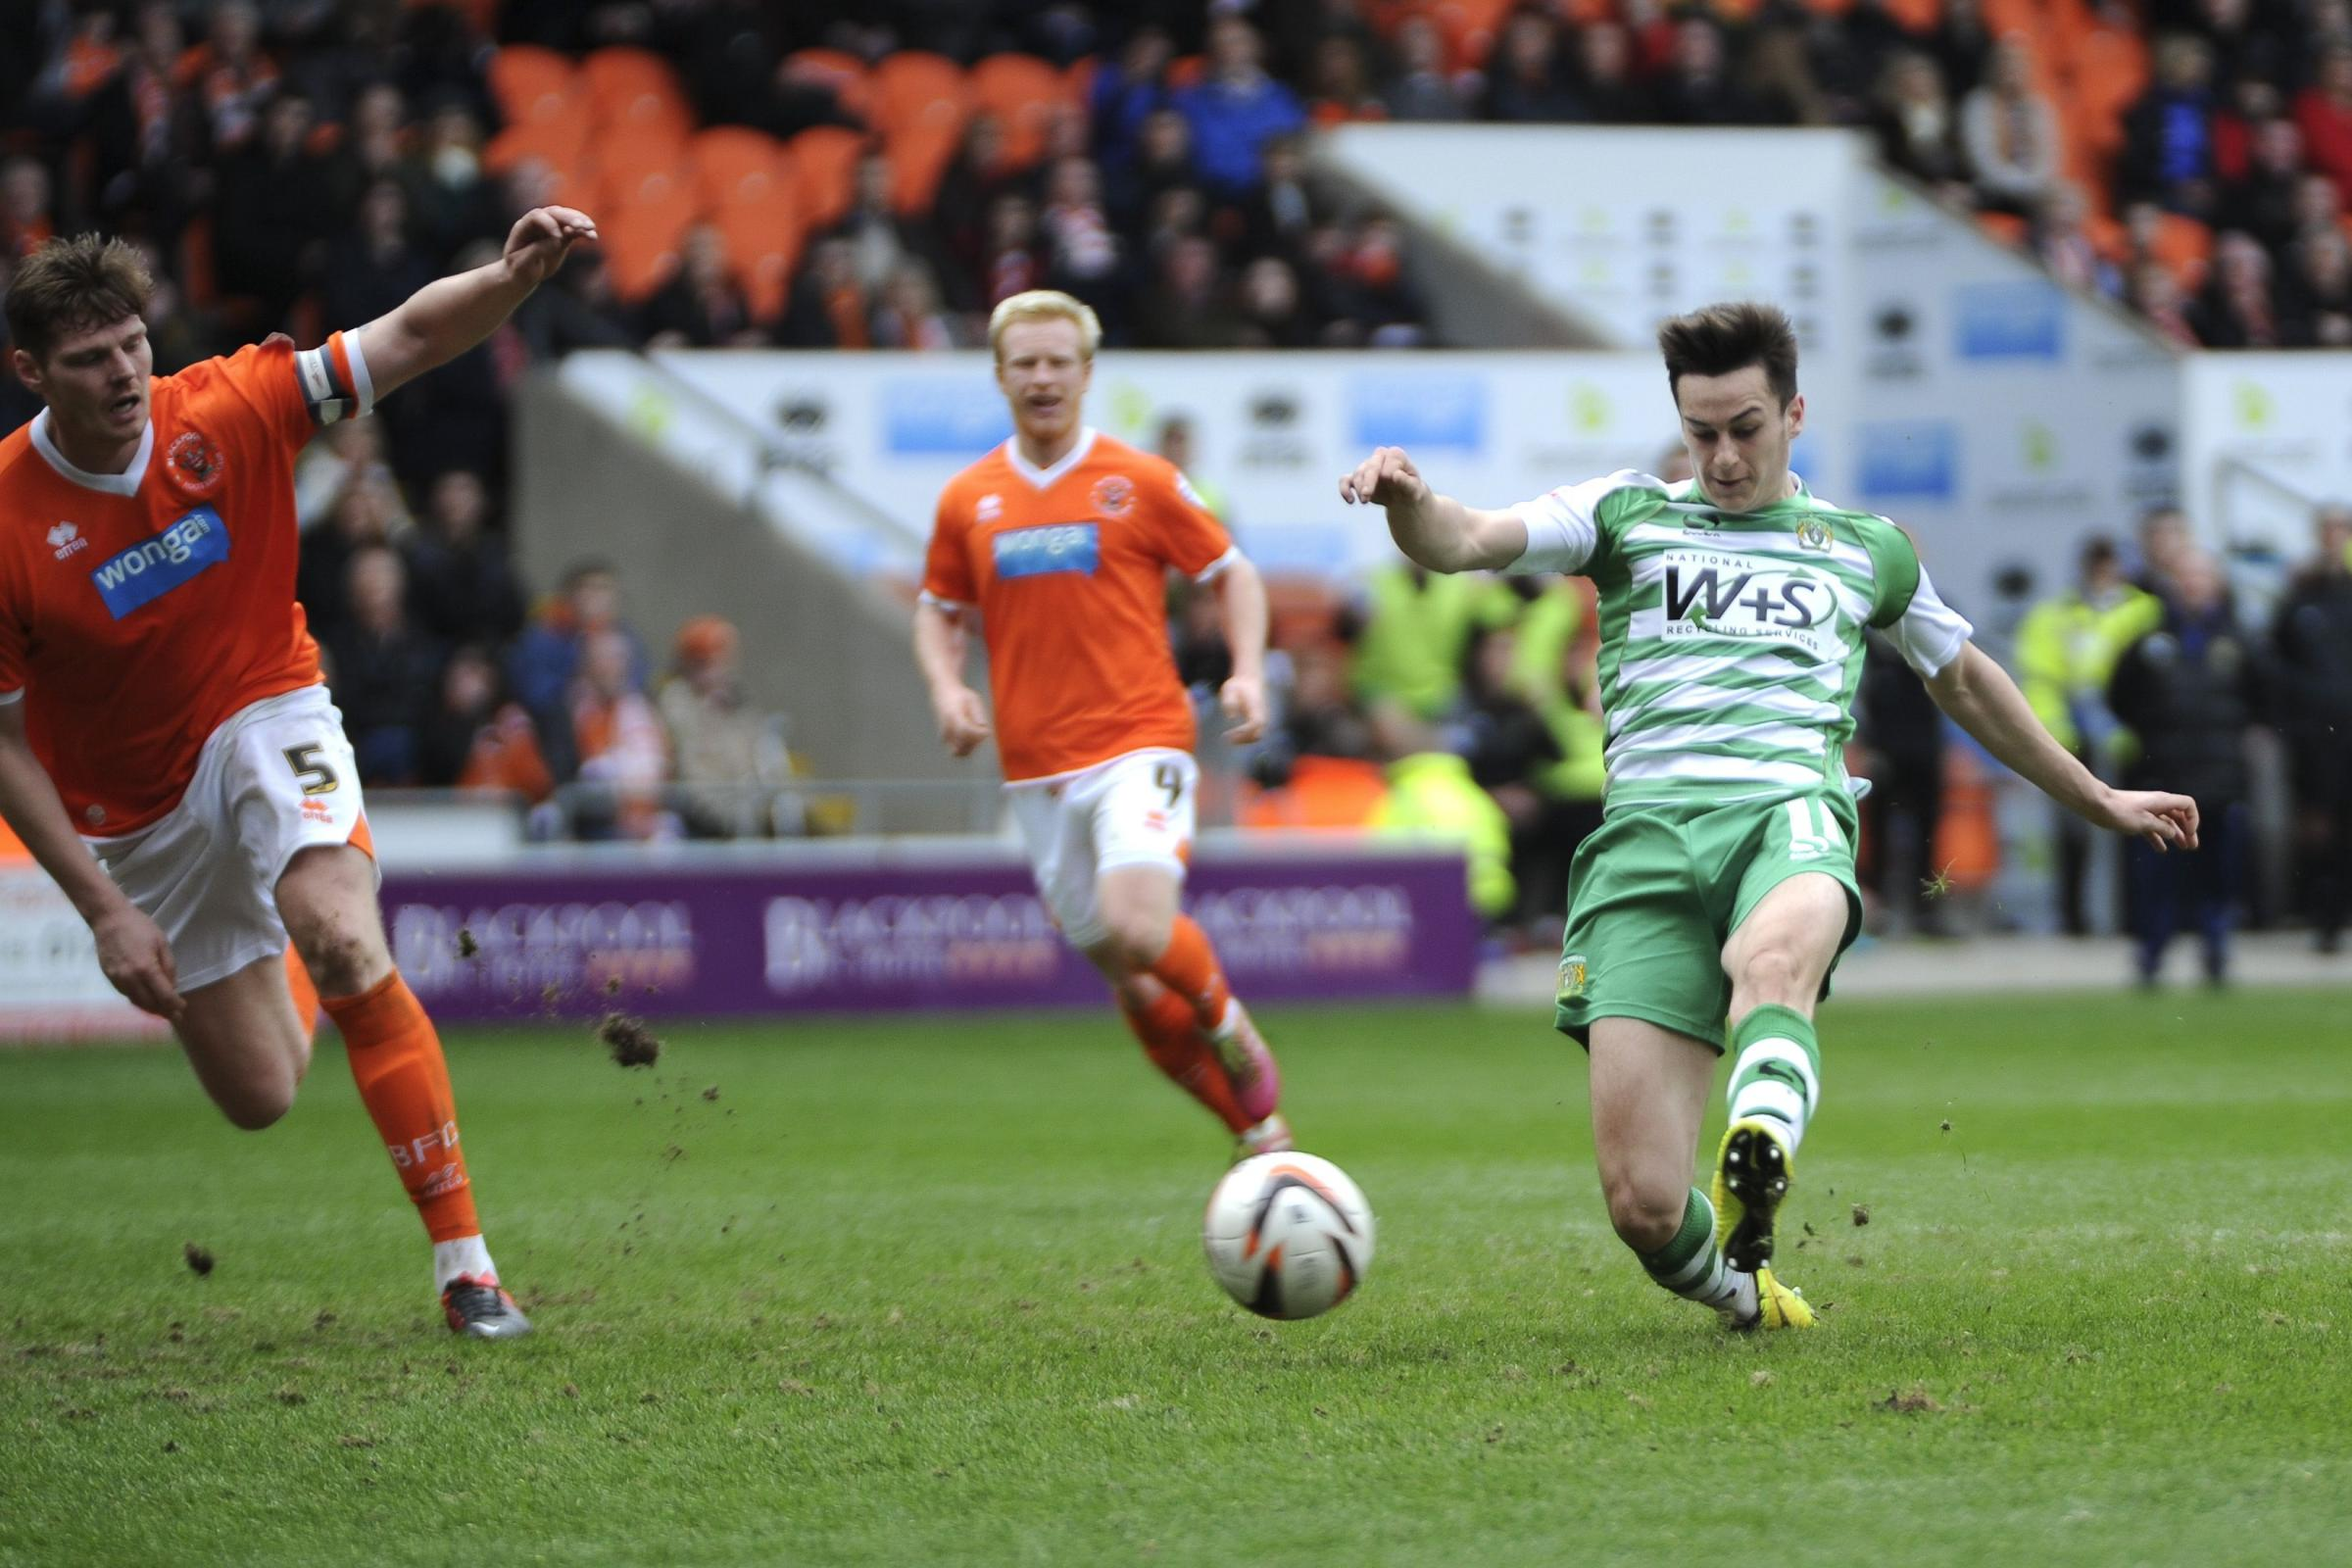 Sky Bet Championship: Blackpool 1, Yeovil Town 2